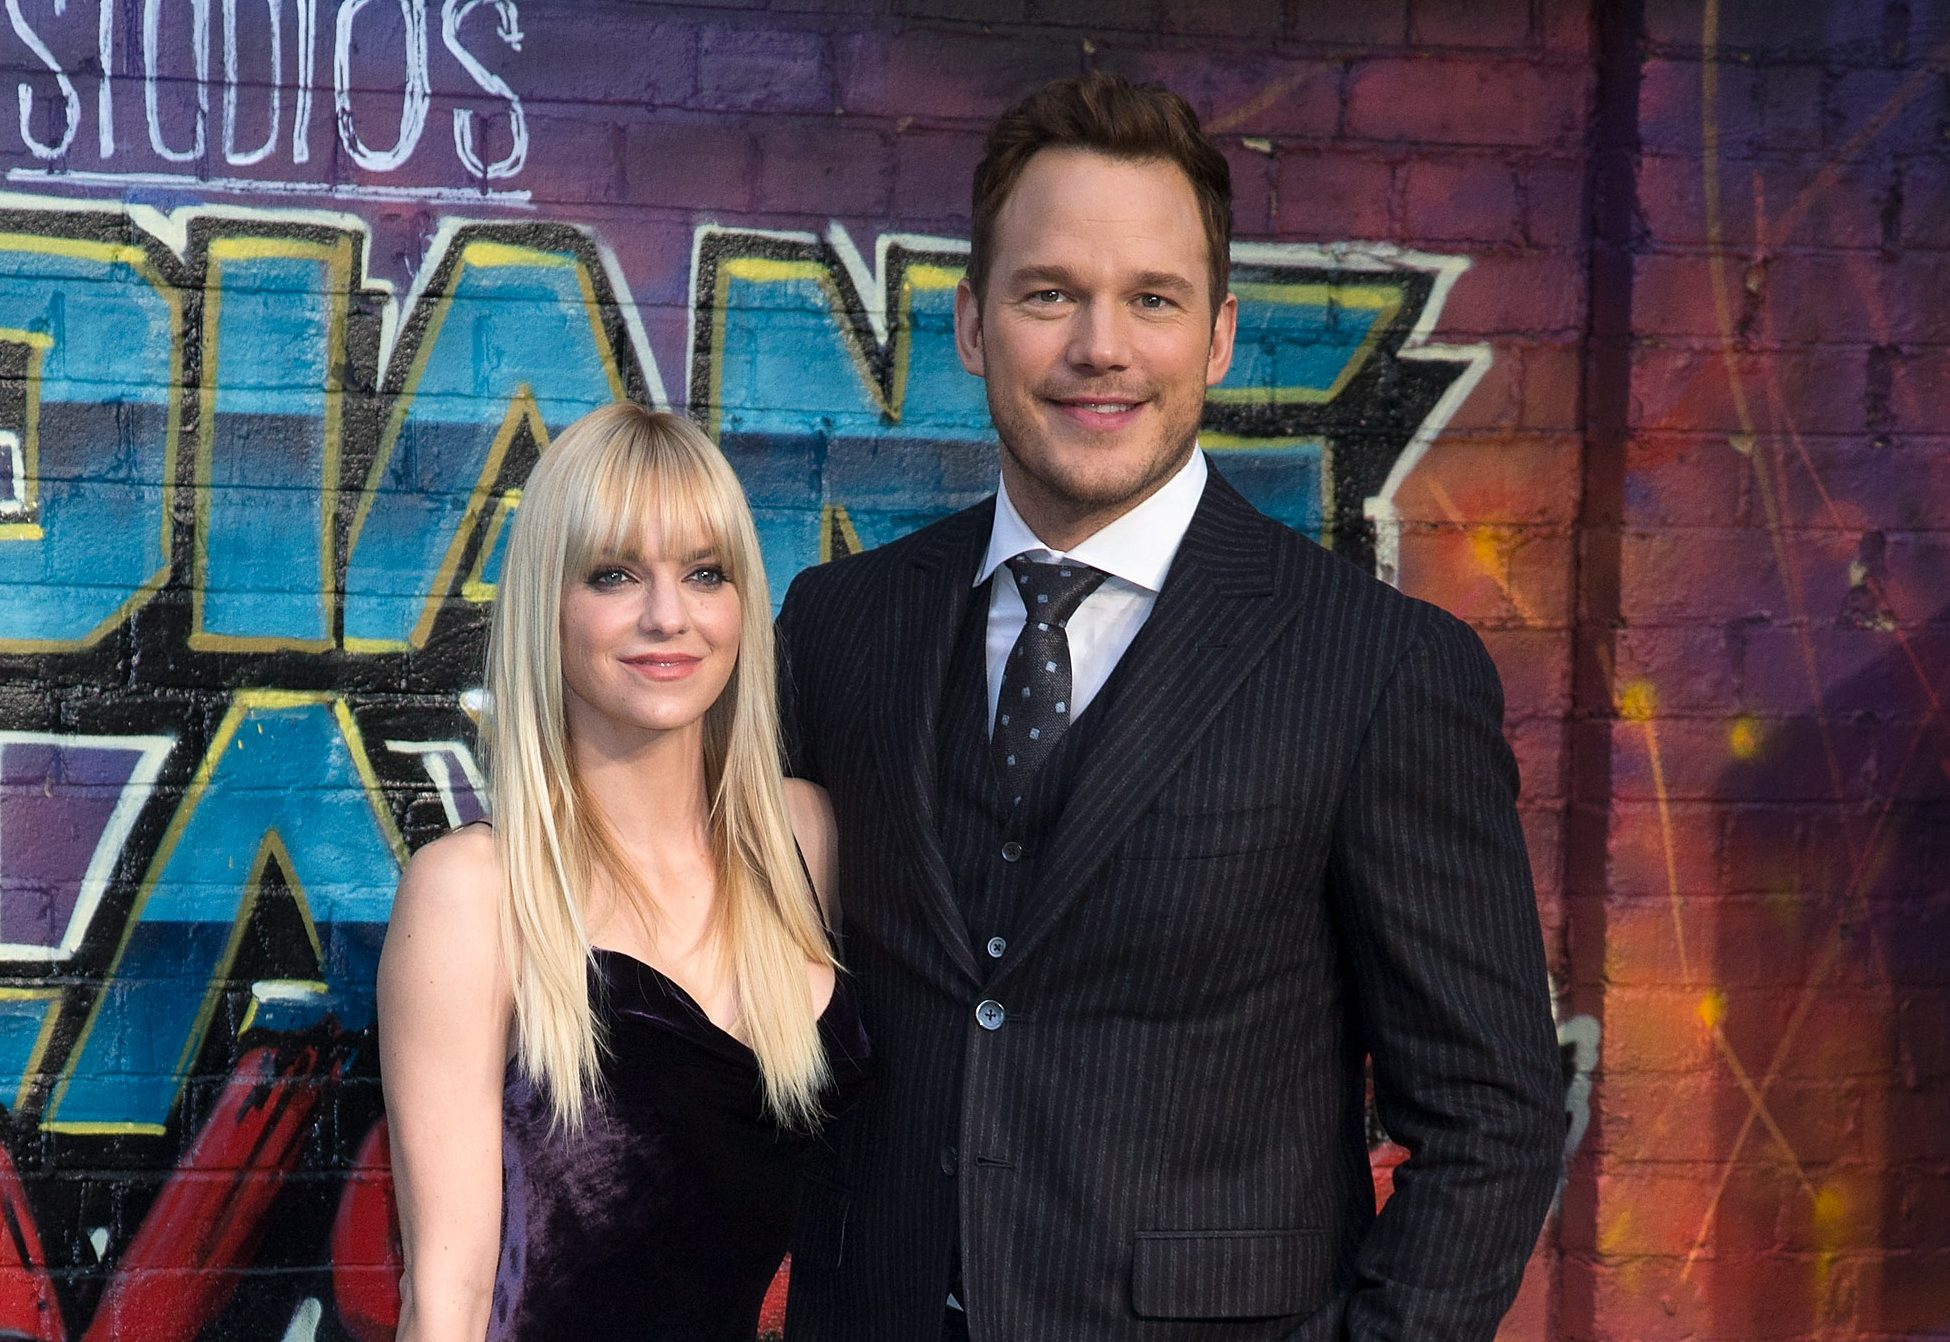 Chris Pratt Opens Up About Split From Anna Faris: 'Divorce Sucks'